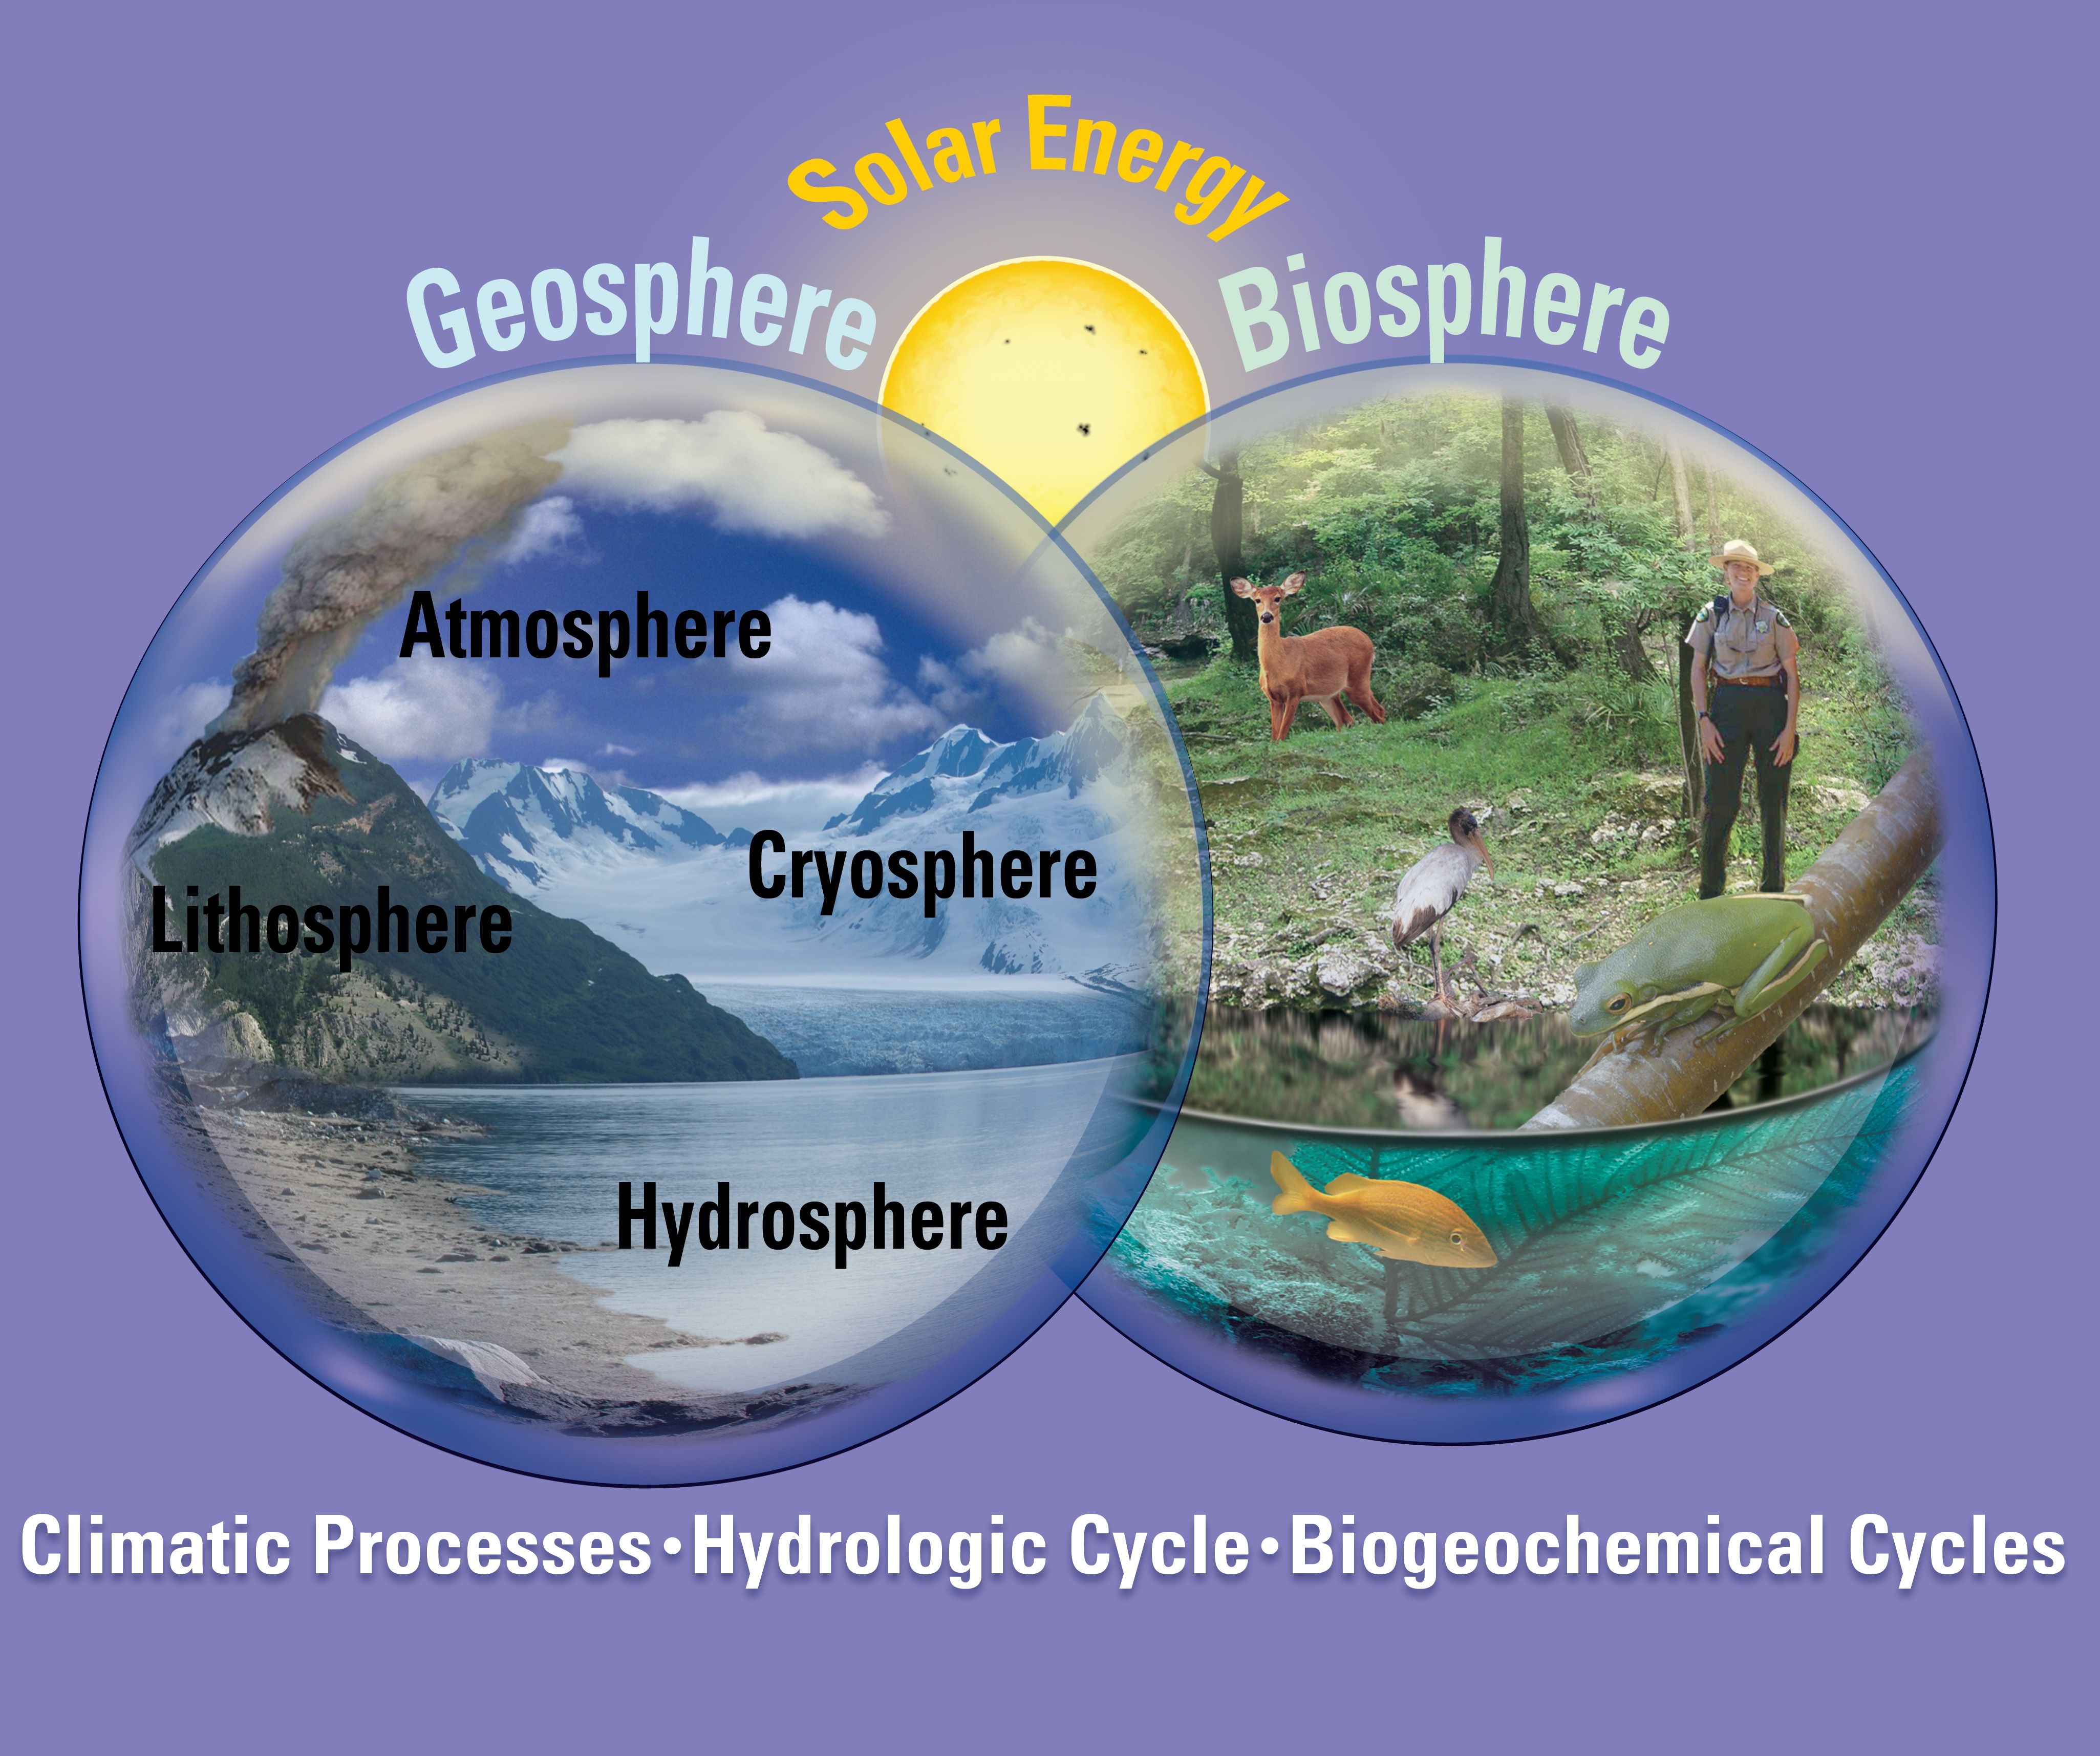 medium resolution of conceptual diagram of the earth system showing the four subcomponents of the geosphere lithosphere atmosphere hydrosphere and cryosphere the biosphere